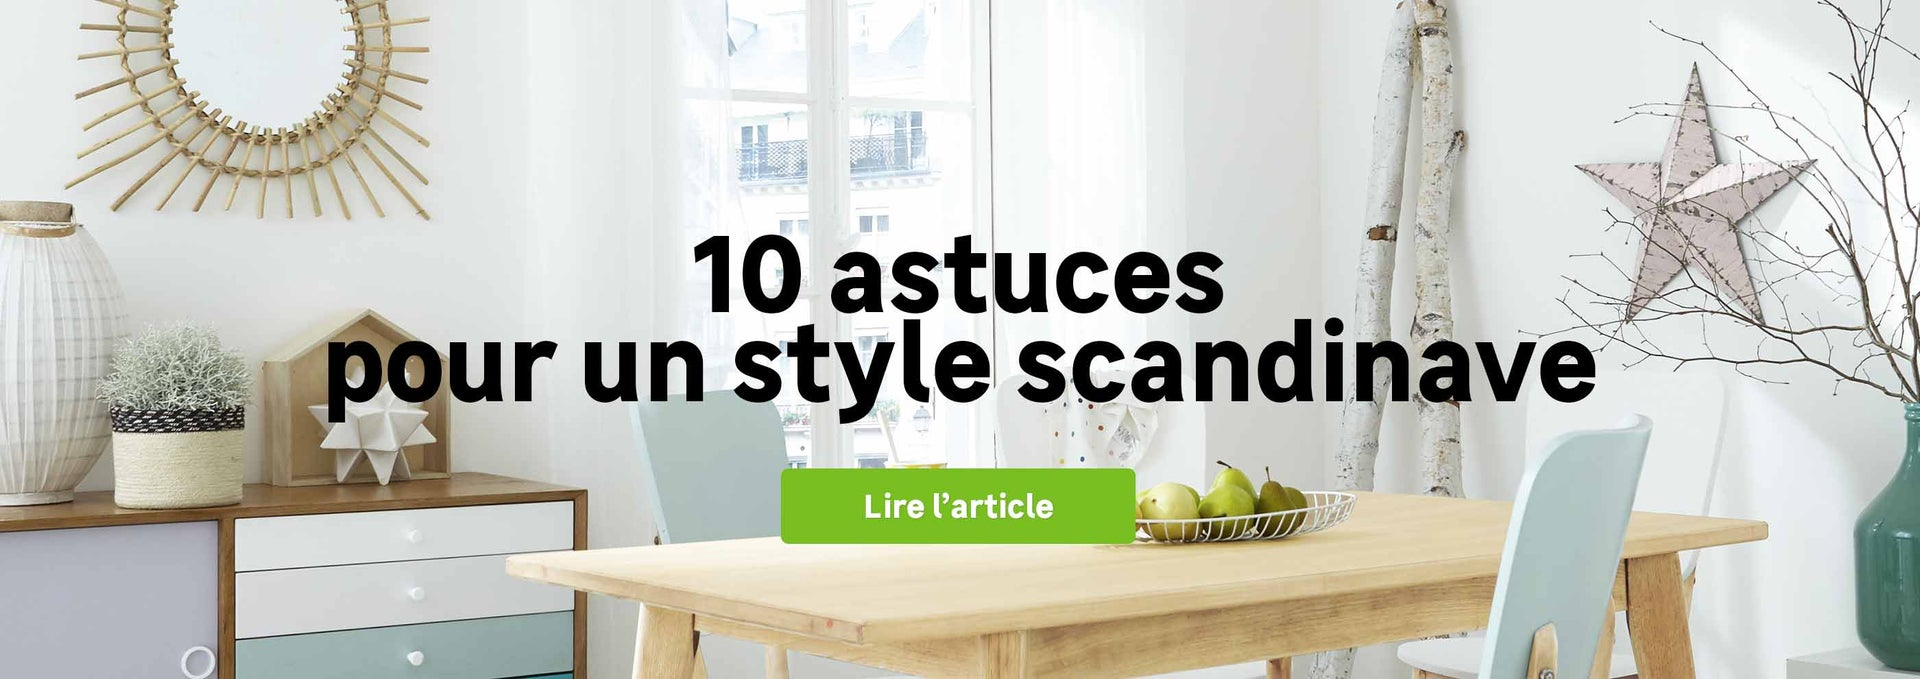 ZM-Astuces-style-scandinave